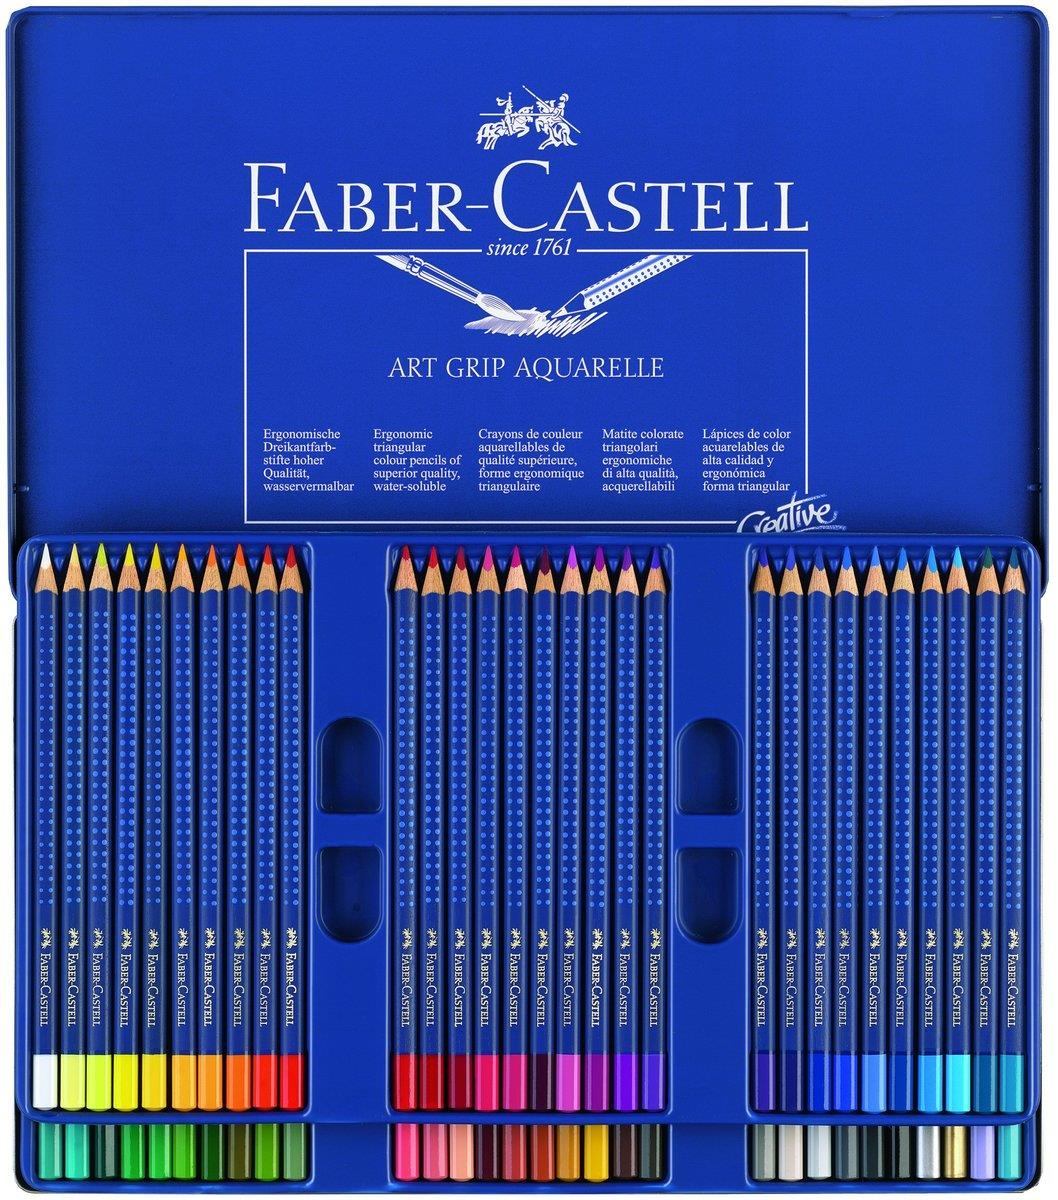 faber castell 114260 aquarellstift art grip aquarelle 60er etui duo. Black Bedroom Furniture Sets. Home Design Ideas